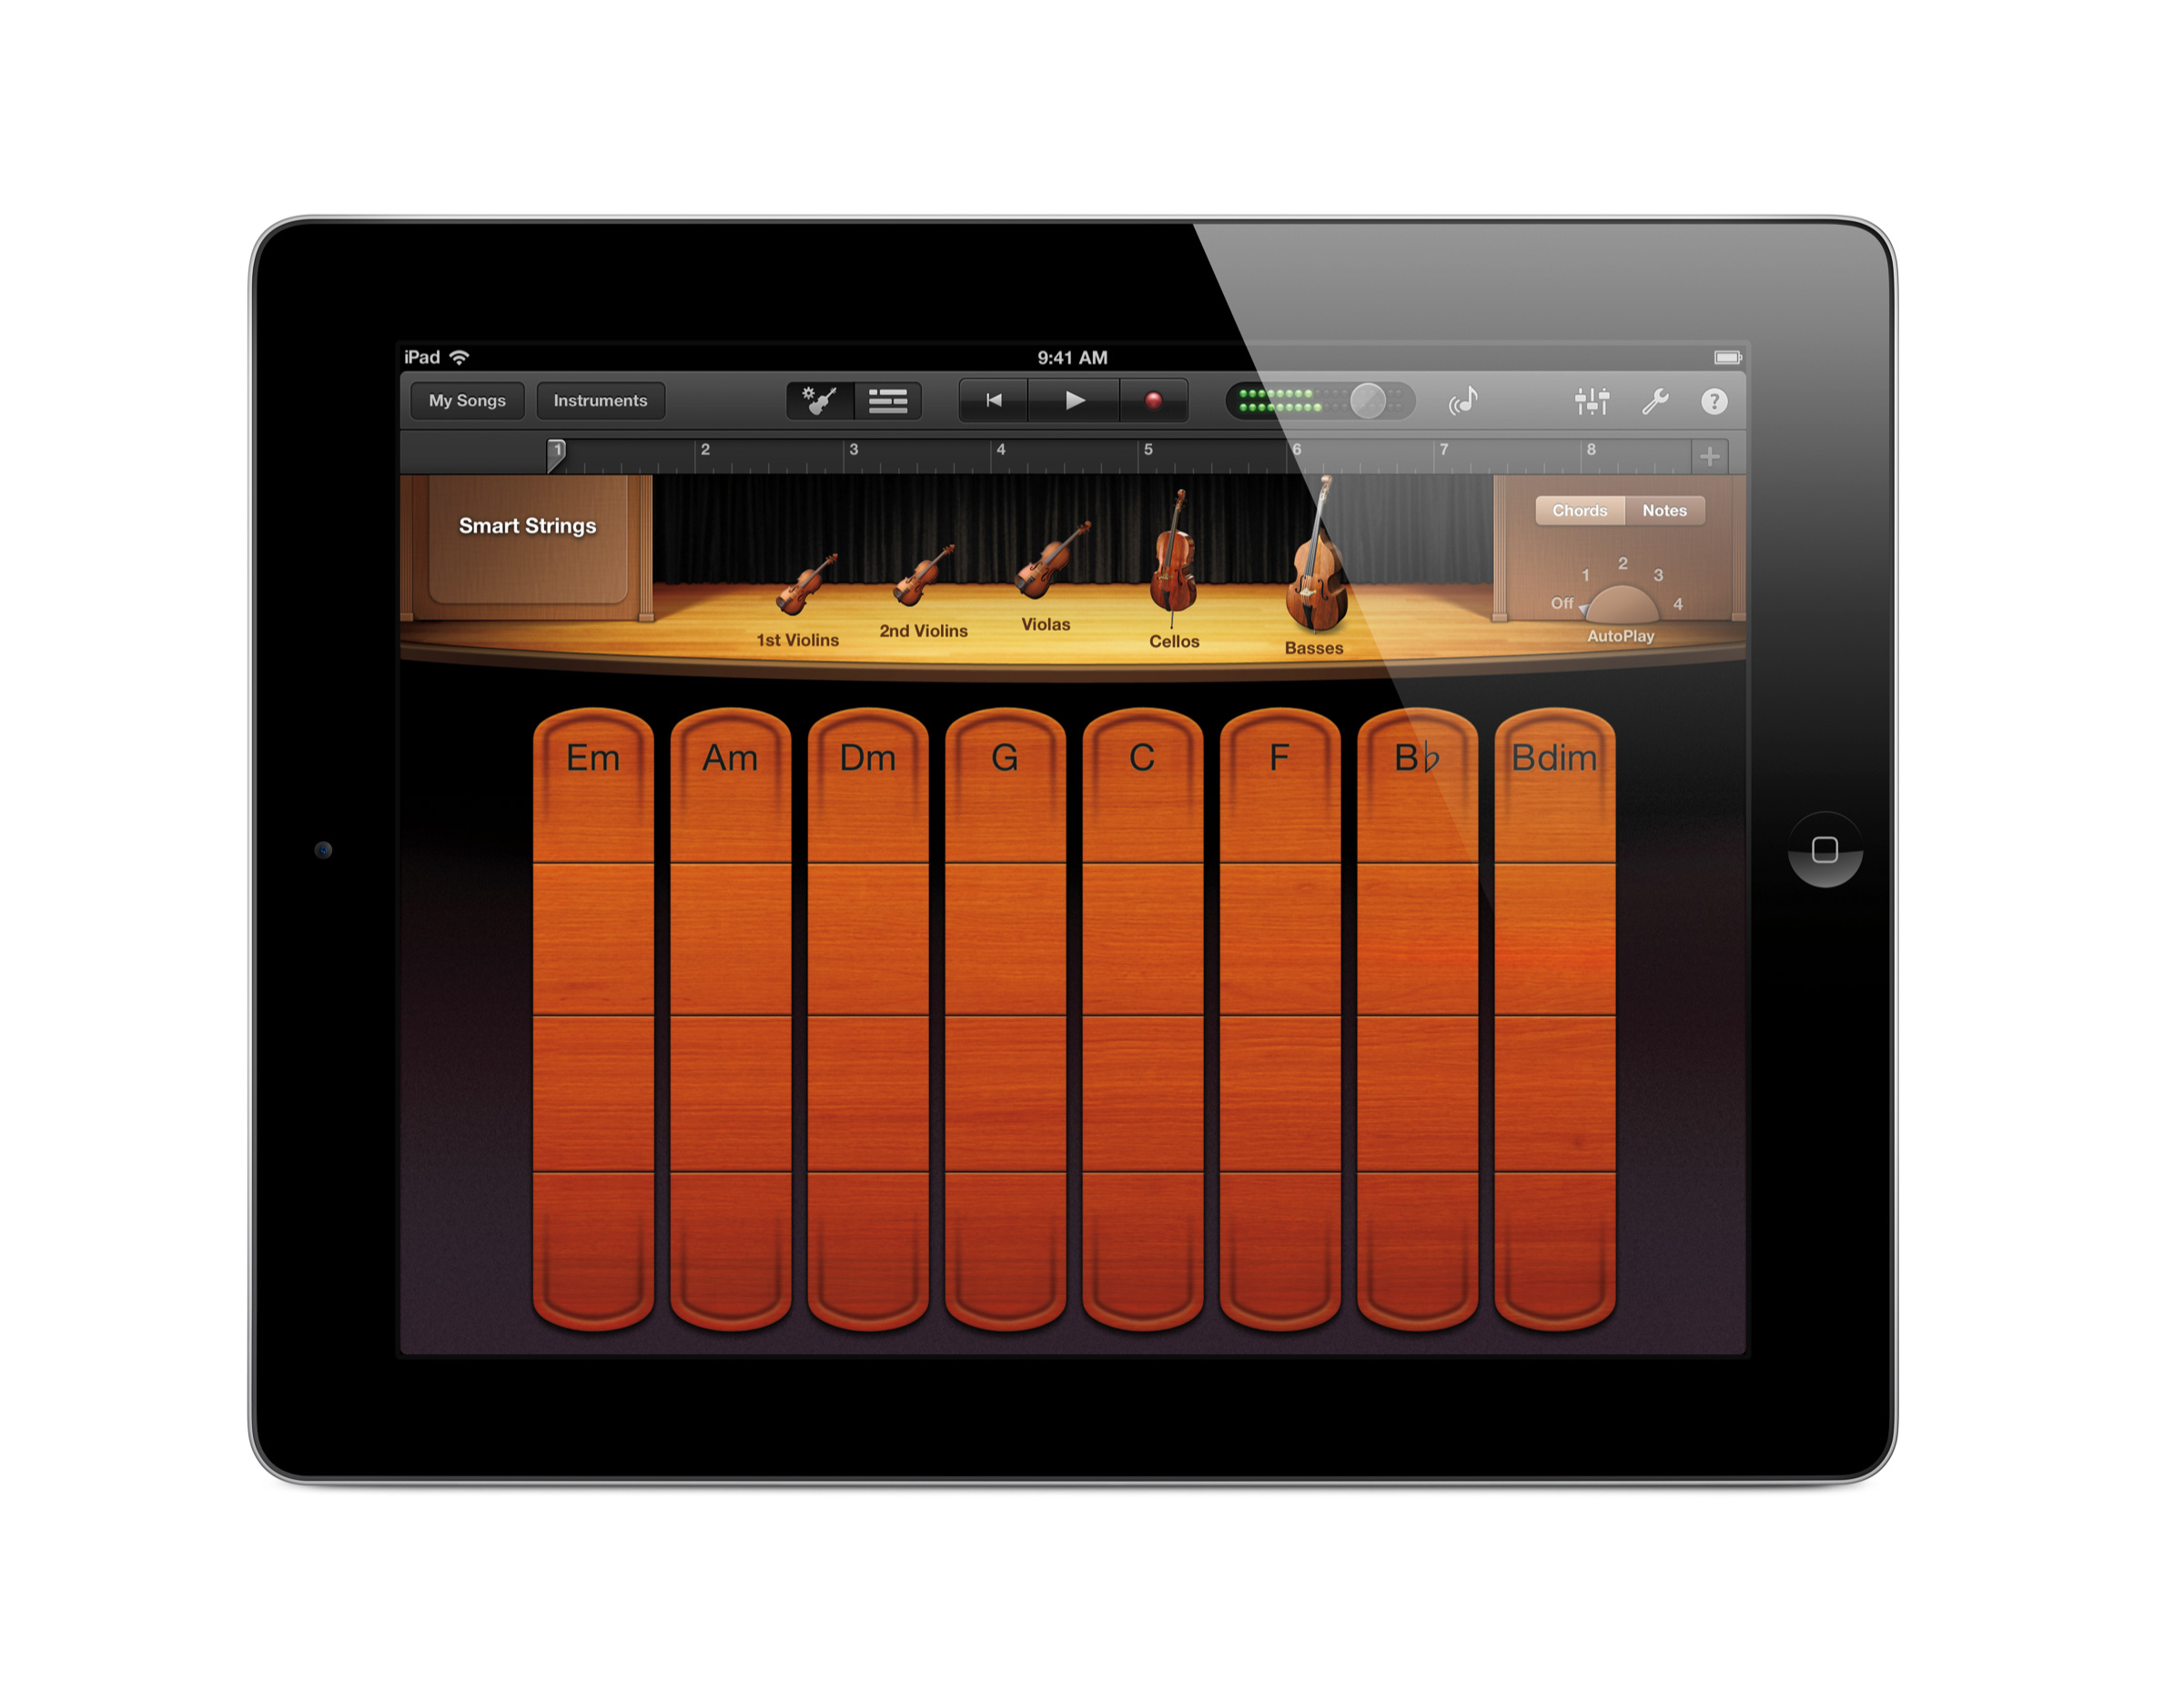 Apple Garageband Jam Pack Symphony Orchestra download torrent a Softwarer